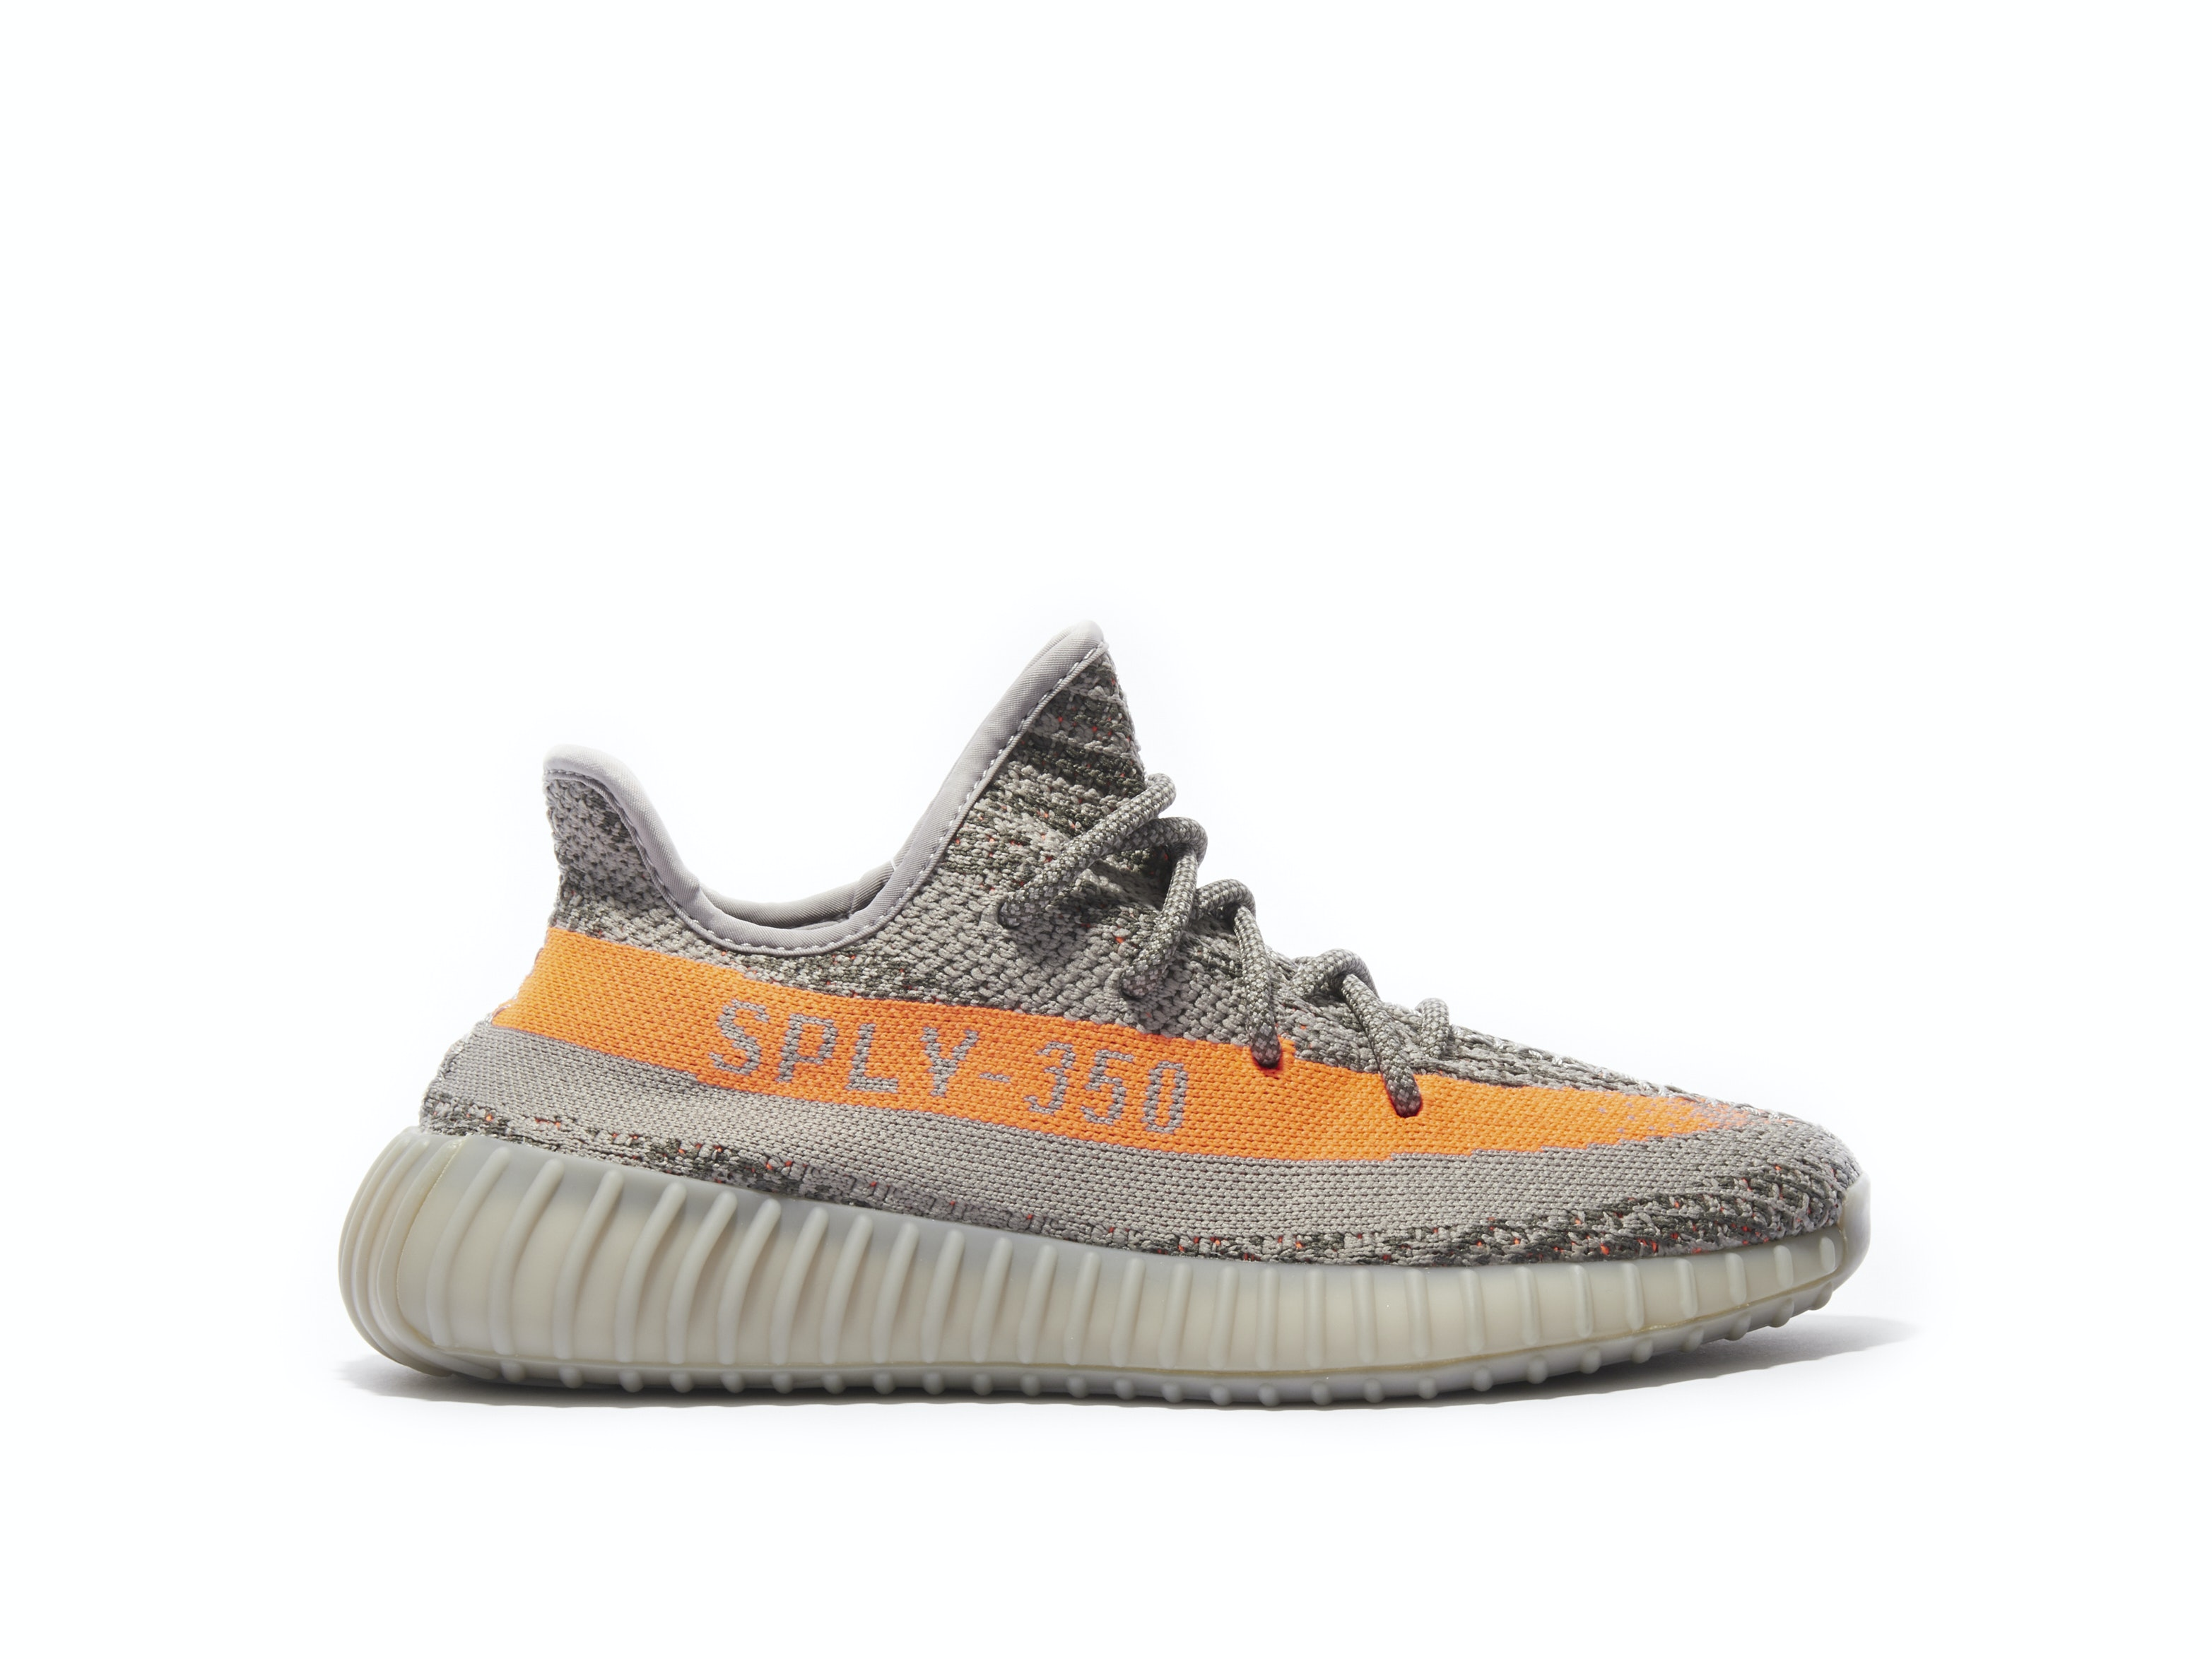 a58ff98d6 Yeezy Boost 350 V2 Beluga. 100% AuthenticAvg ...